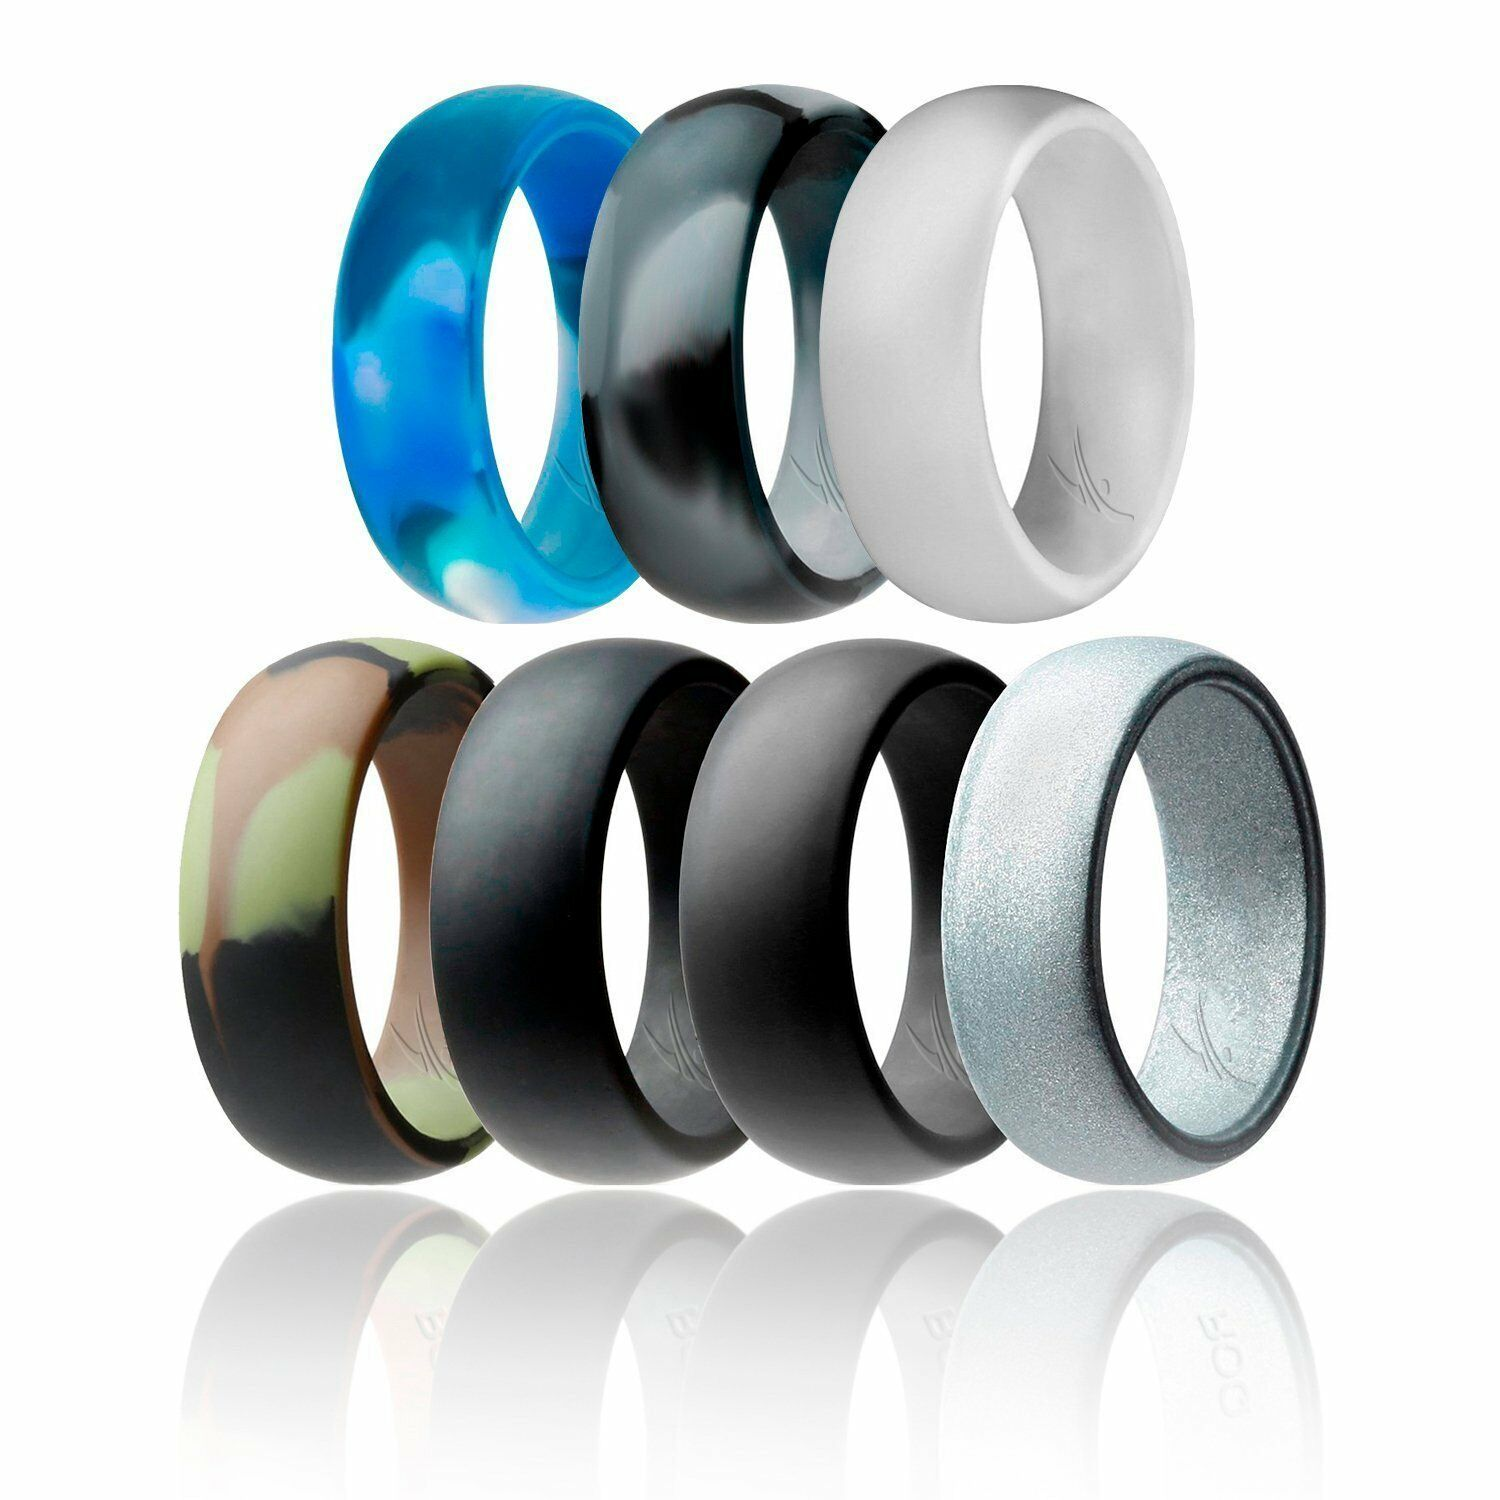 ROQ 7 Pack of Silicone Wedding Rings for Men, Sturdy and Fle